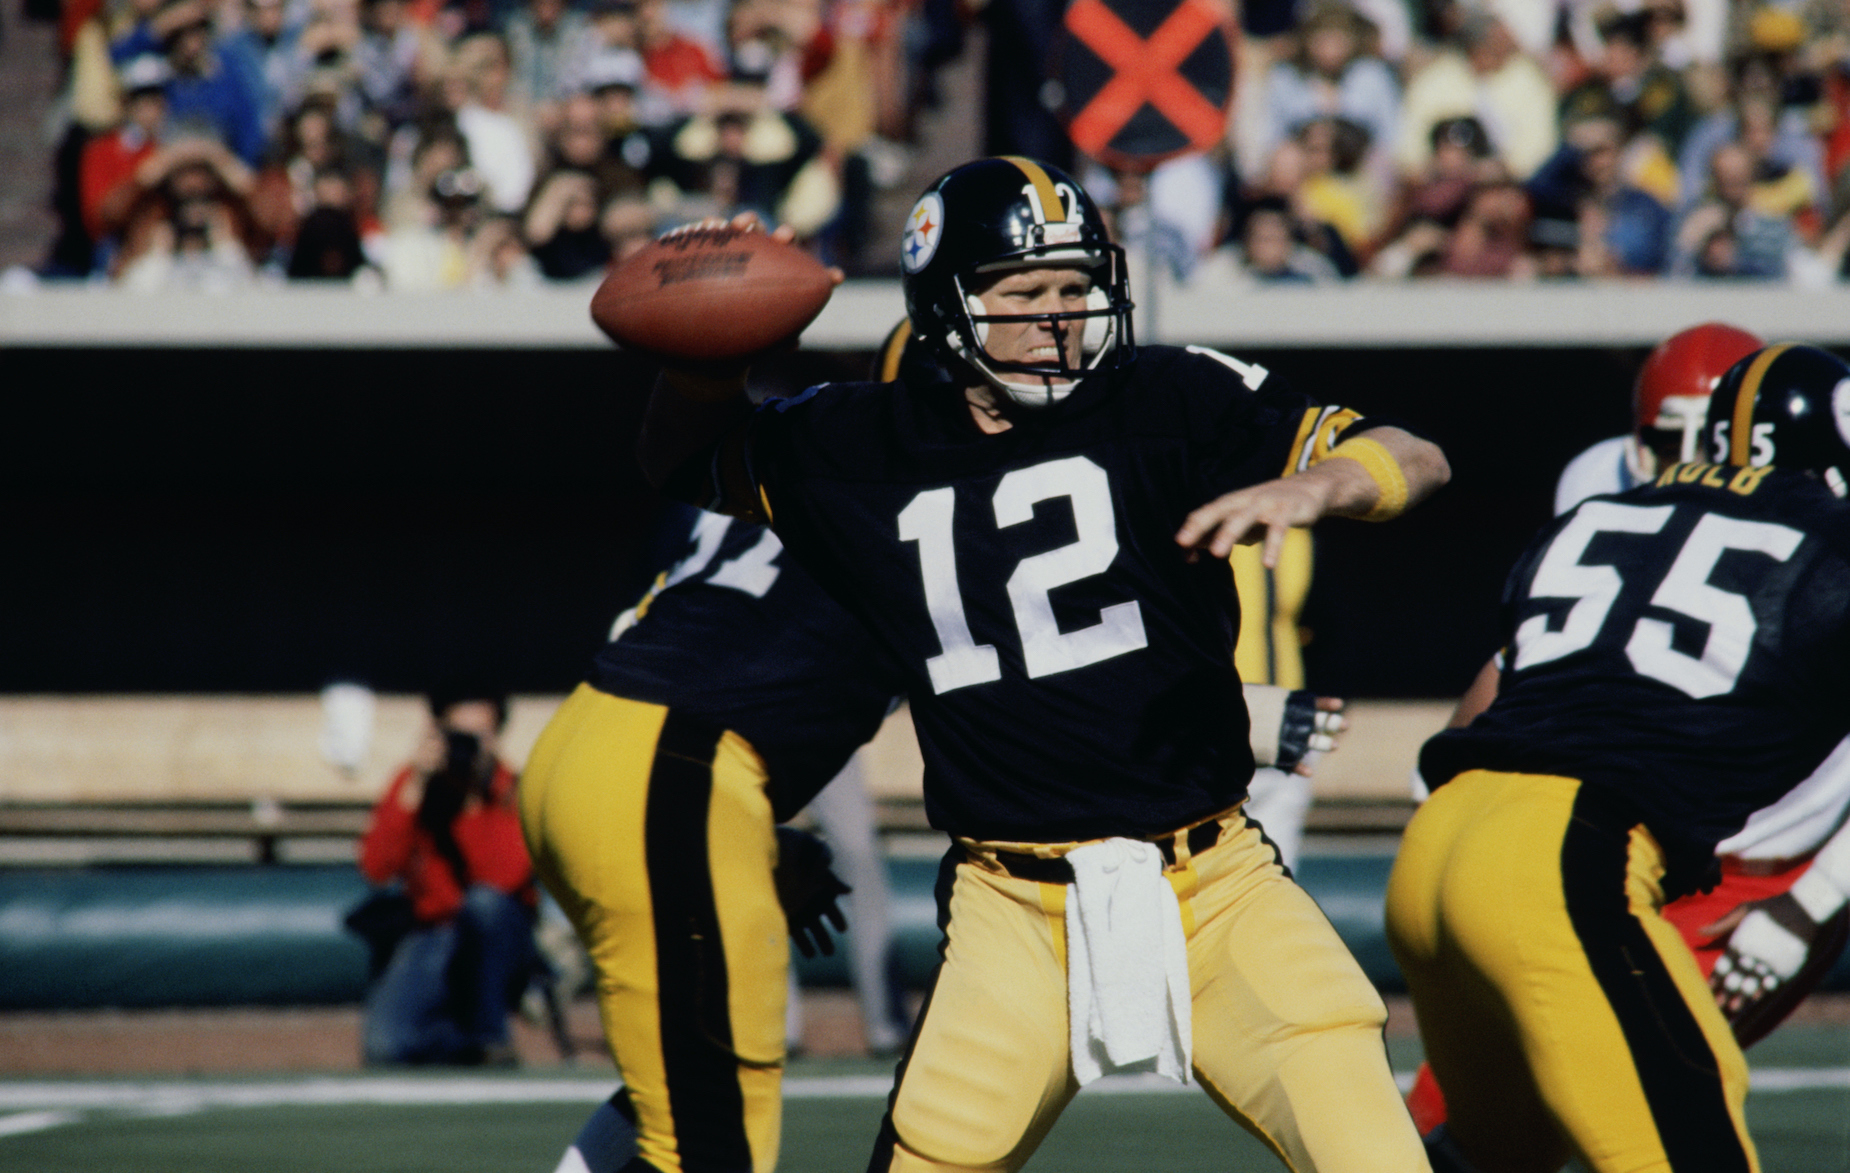 Terry Bradshaw Won 4 Super Bowls in the 1970s but Wishes He Could Play Football Today: 'I'd Be Filthy Rich'